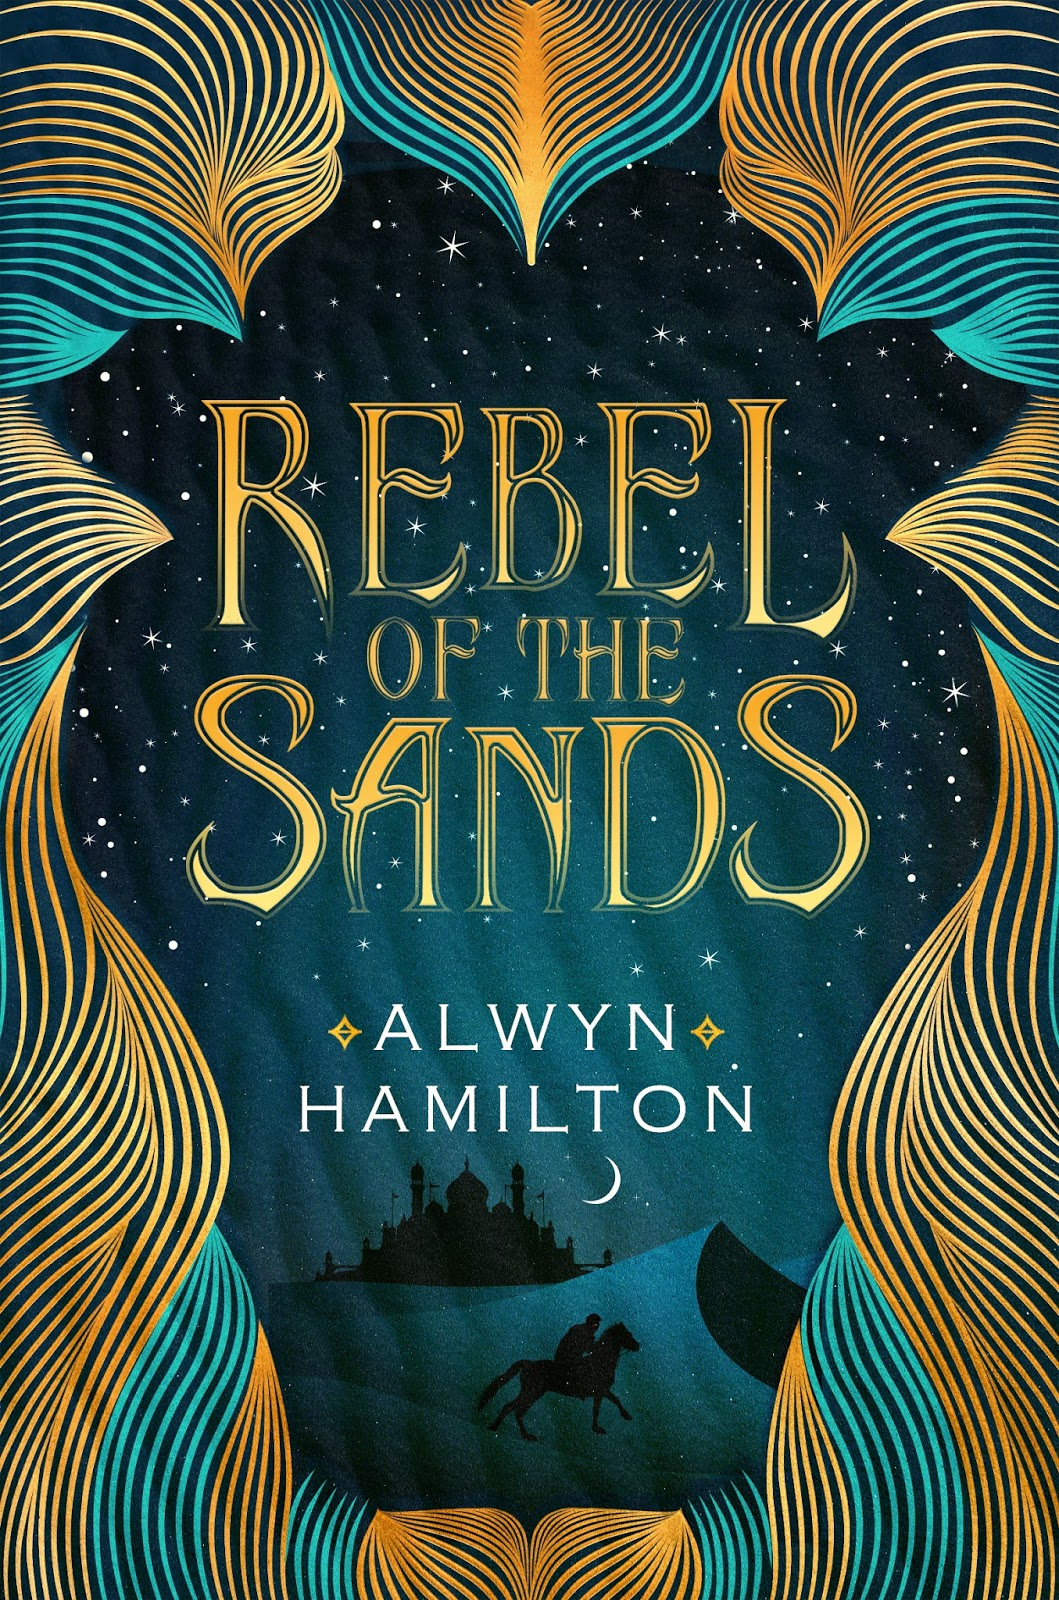 http://nothingbutn9erz.blogspot.co.at/2016/02/rebel-of-the-sands-alwyn-hamilton-rezension.html